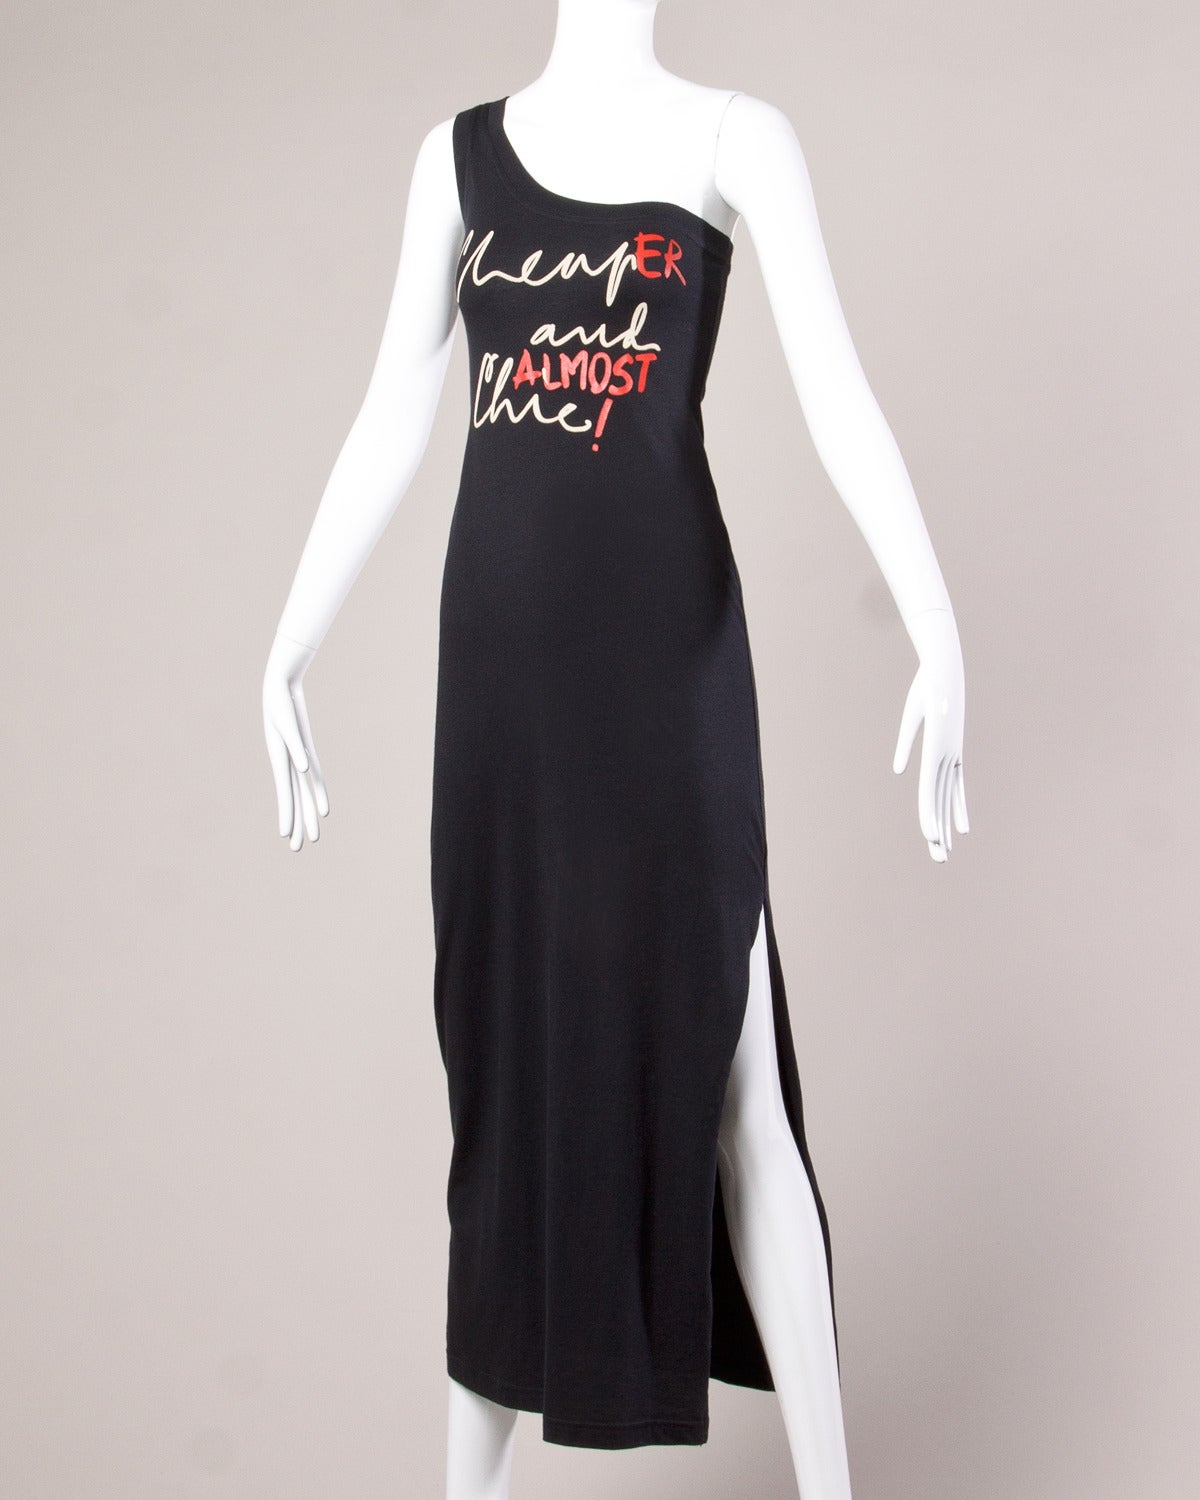 "Unworn Moschino Vintage ""CheapEr and ALMOST Chic!"" Maxi Dress 2"